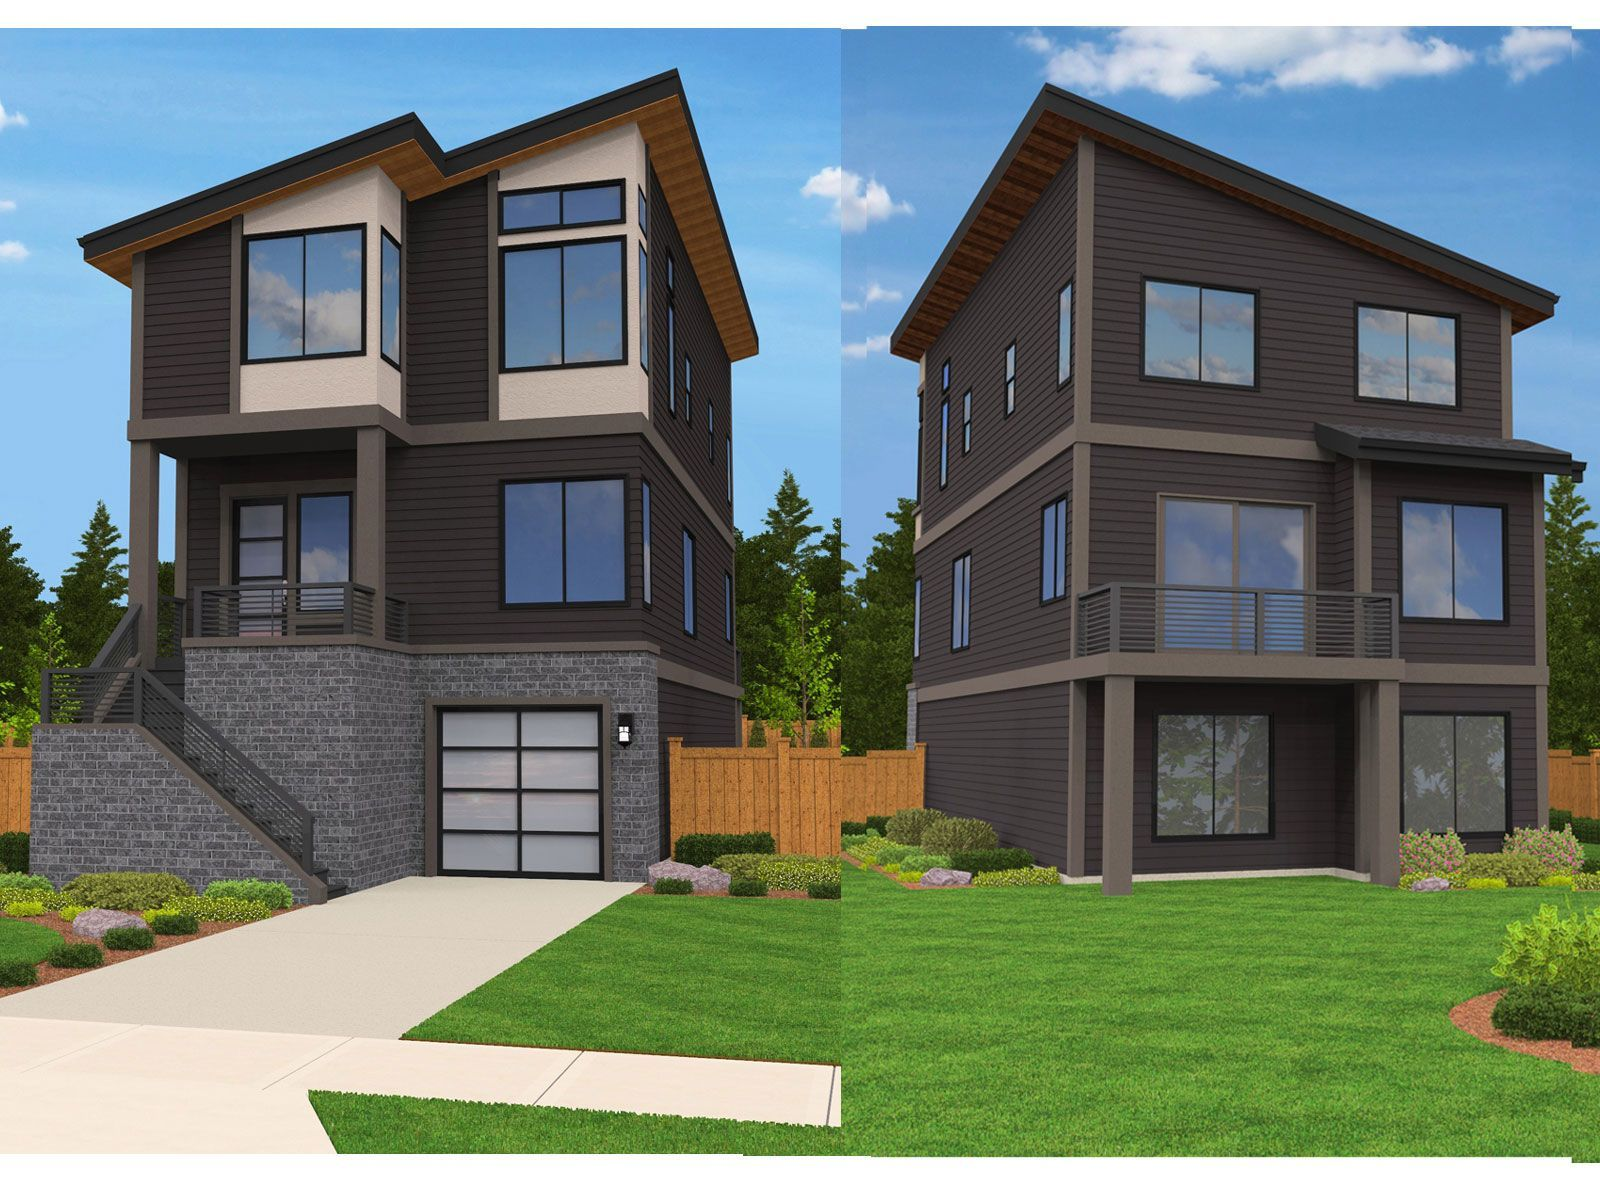 Madison house plan built in city of portland for Madison home design